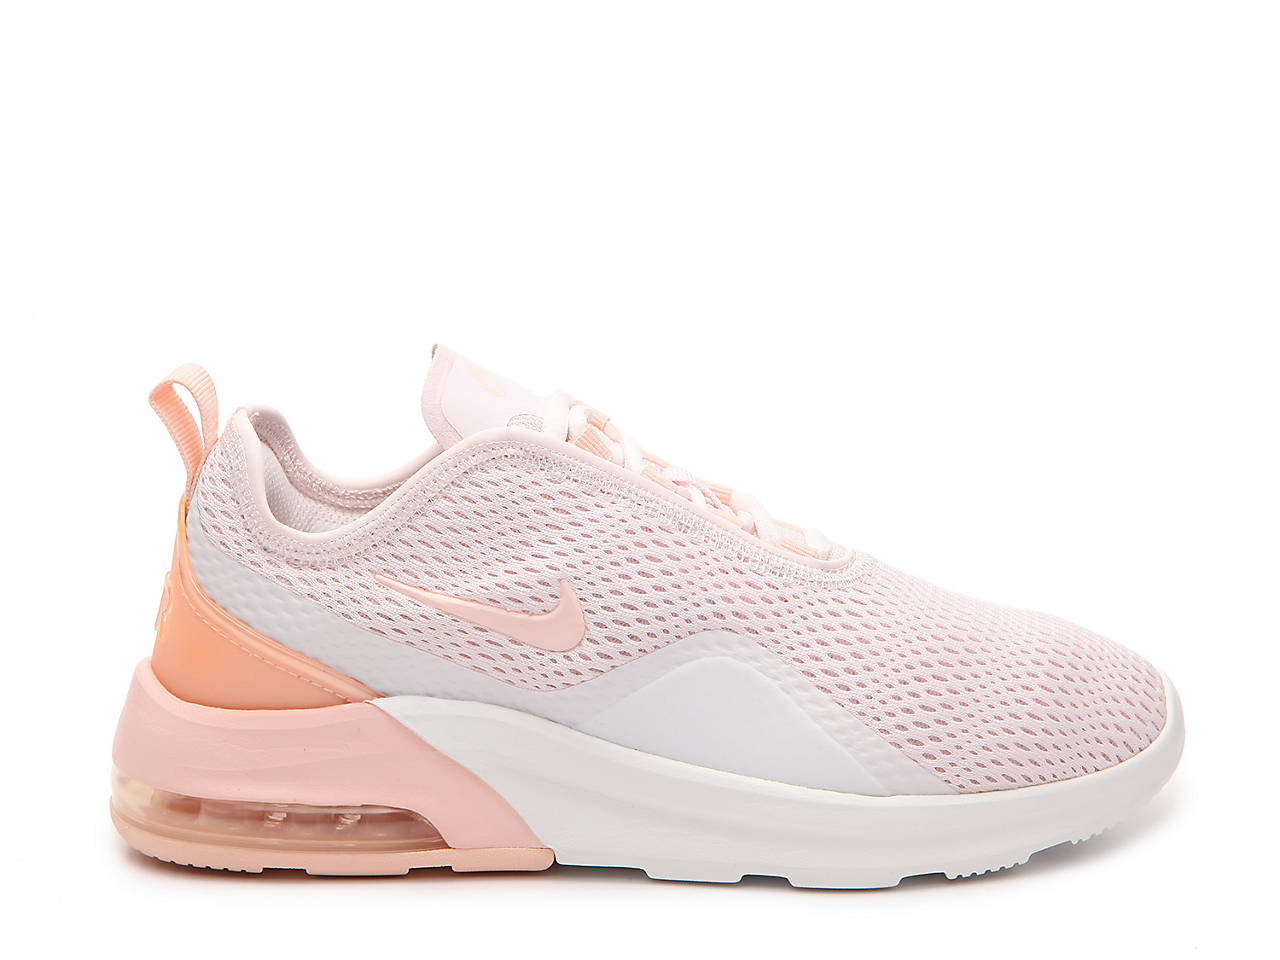 Nike Air Max Motion 2 Sneaker Women's Women's Shoes DSW  DSW